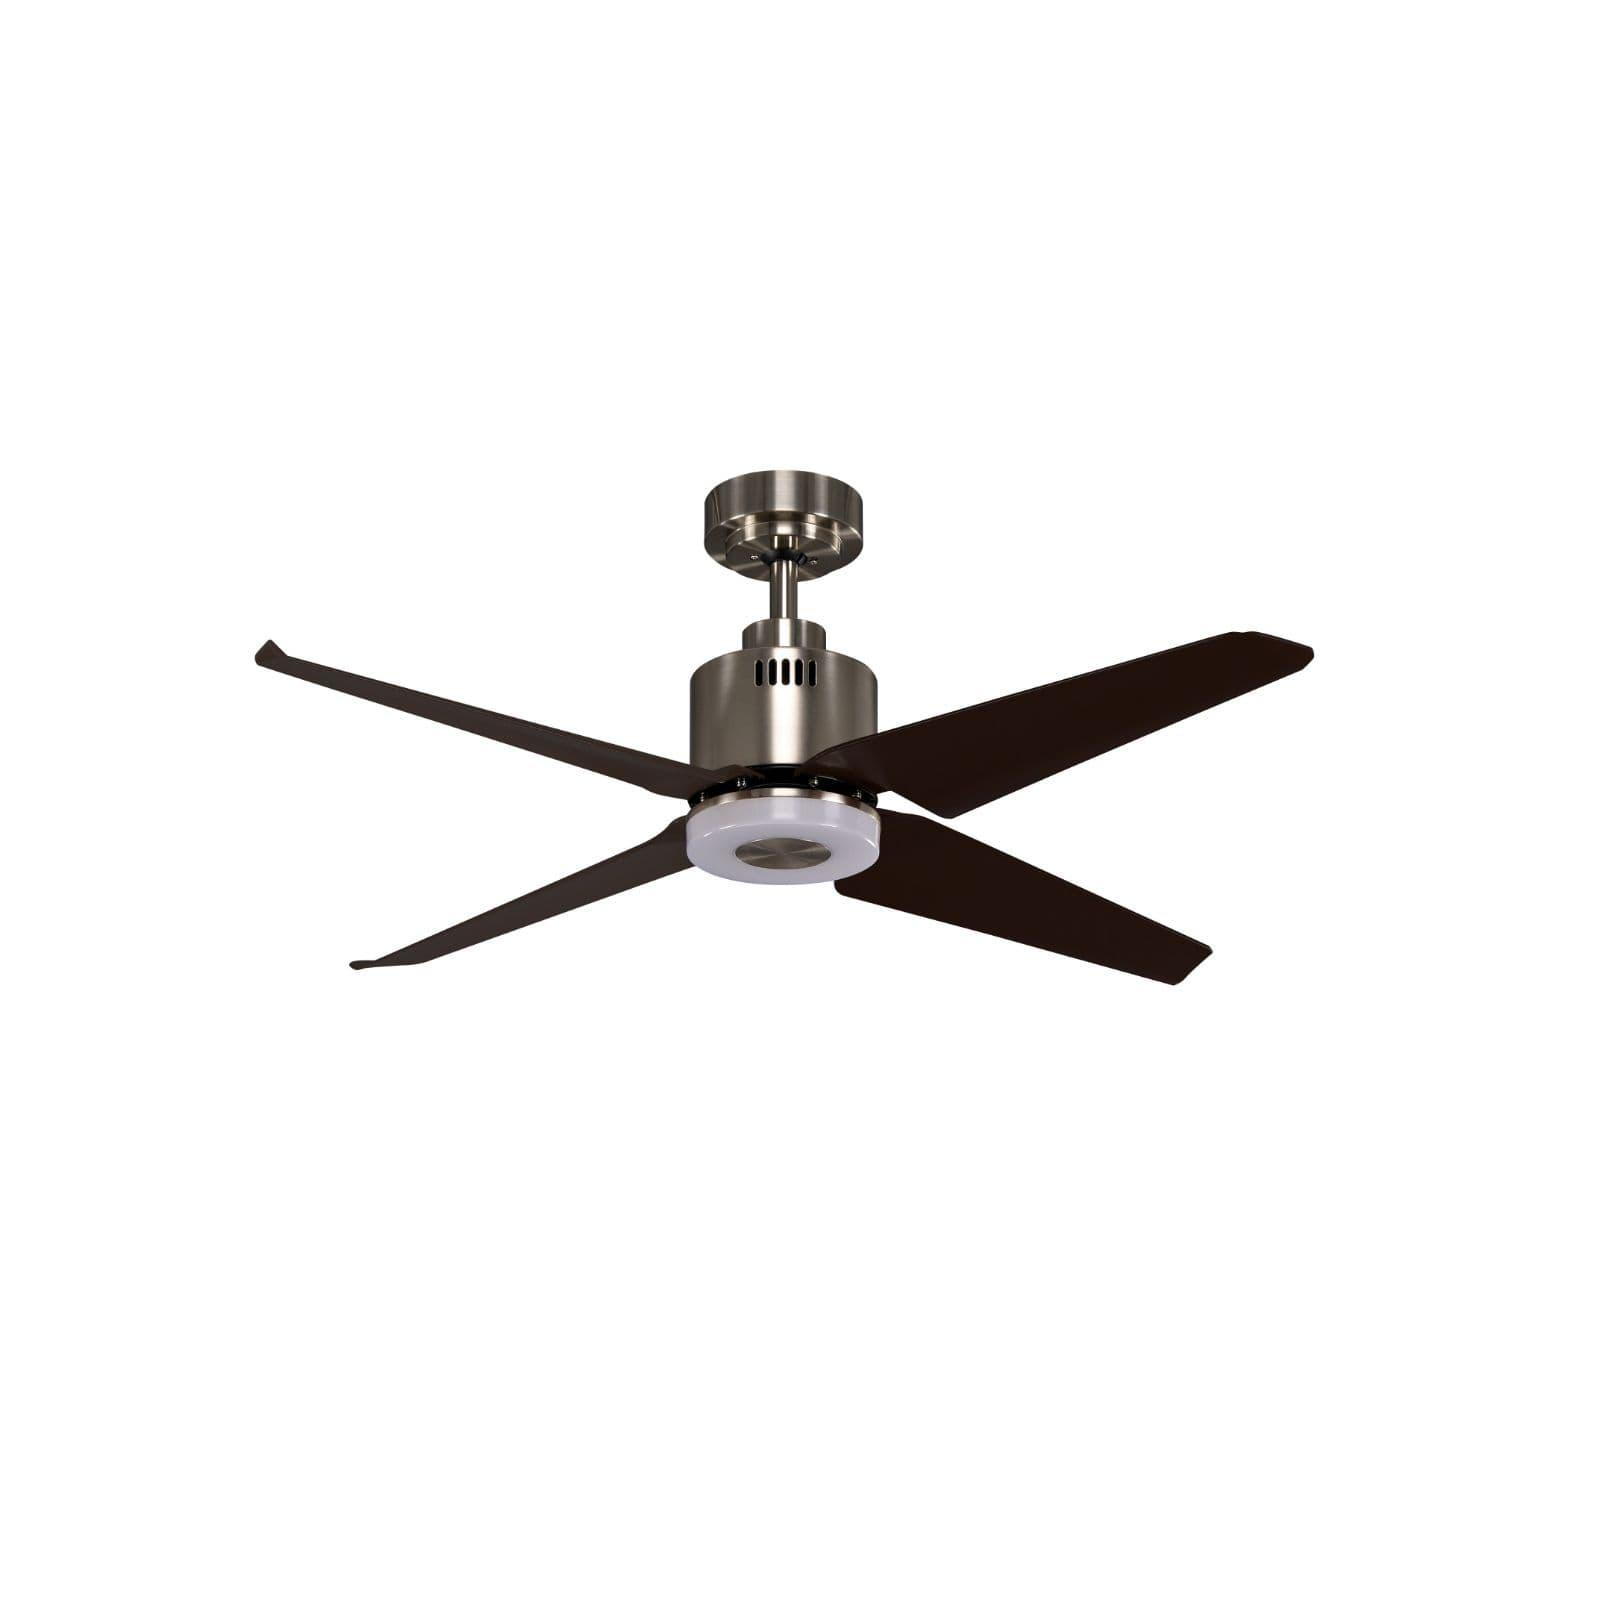 Buy Brand New Collection of Fan | Lazada sg